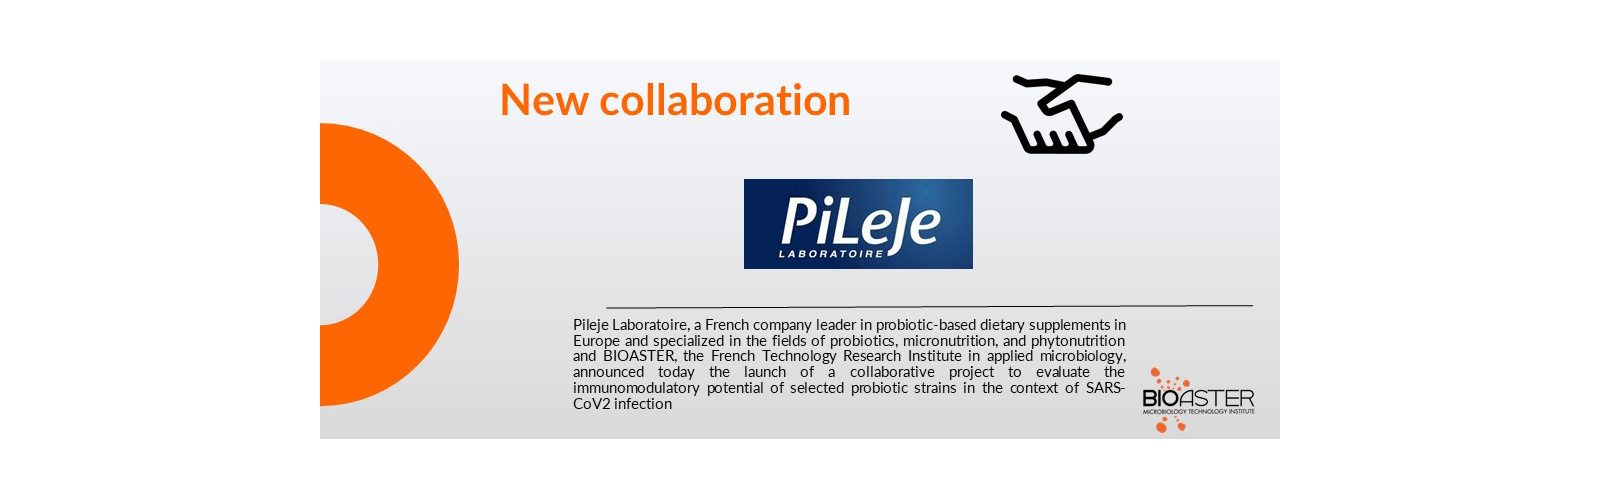 New collaboration with Pileje